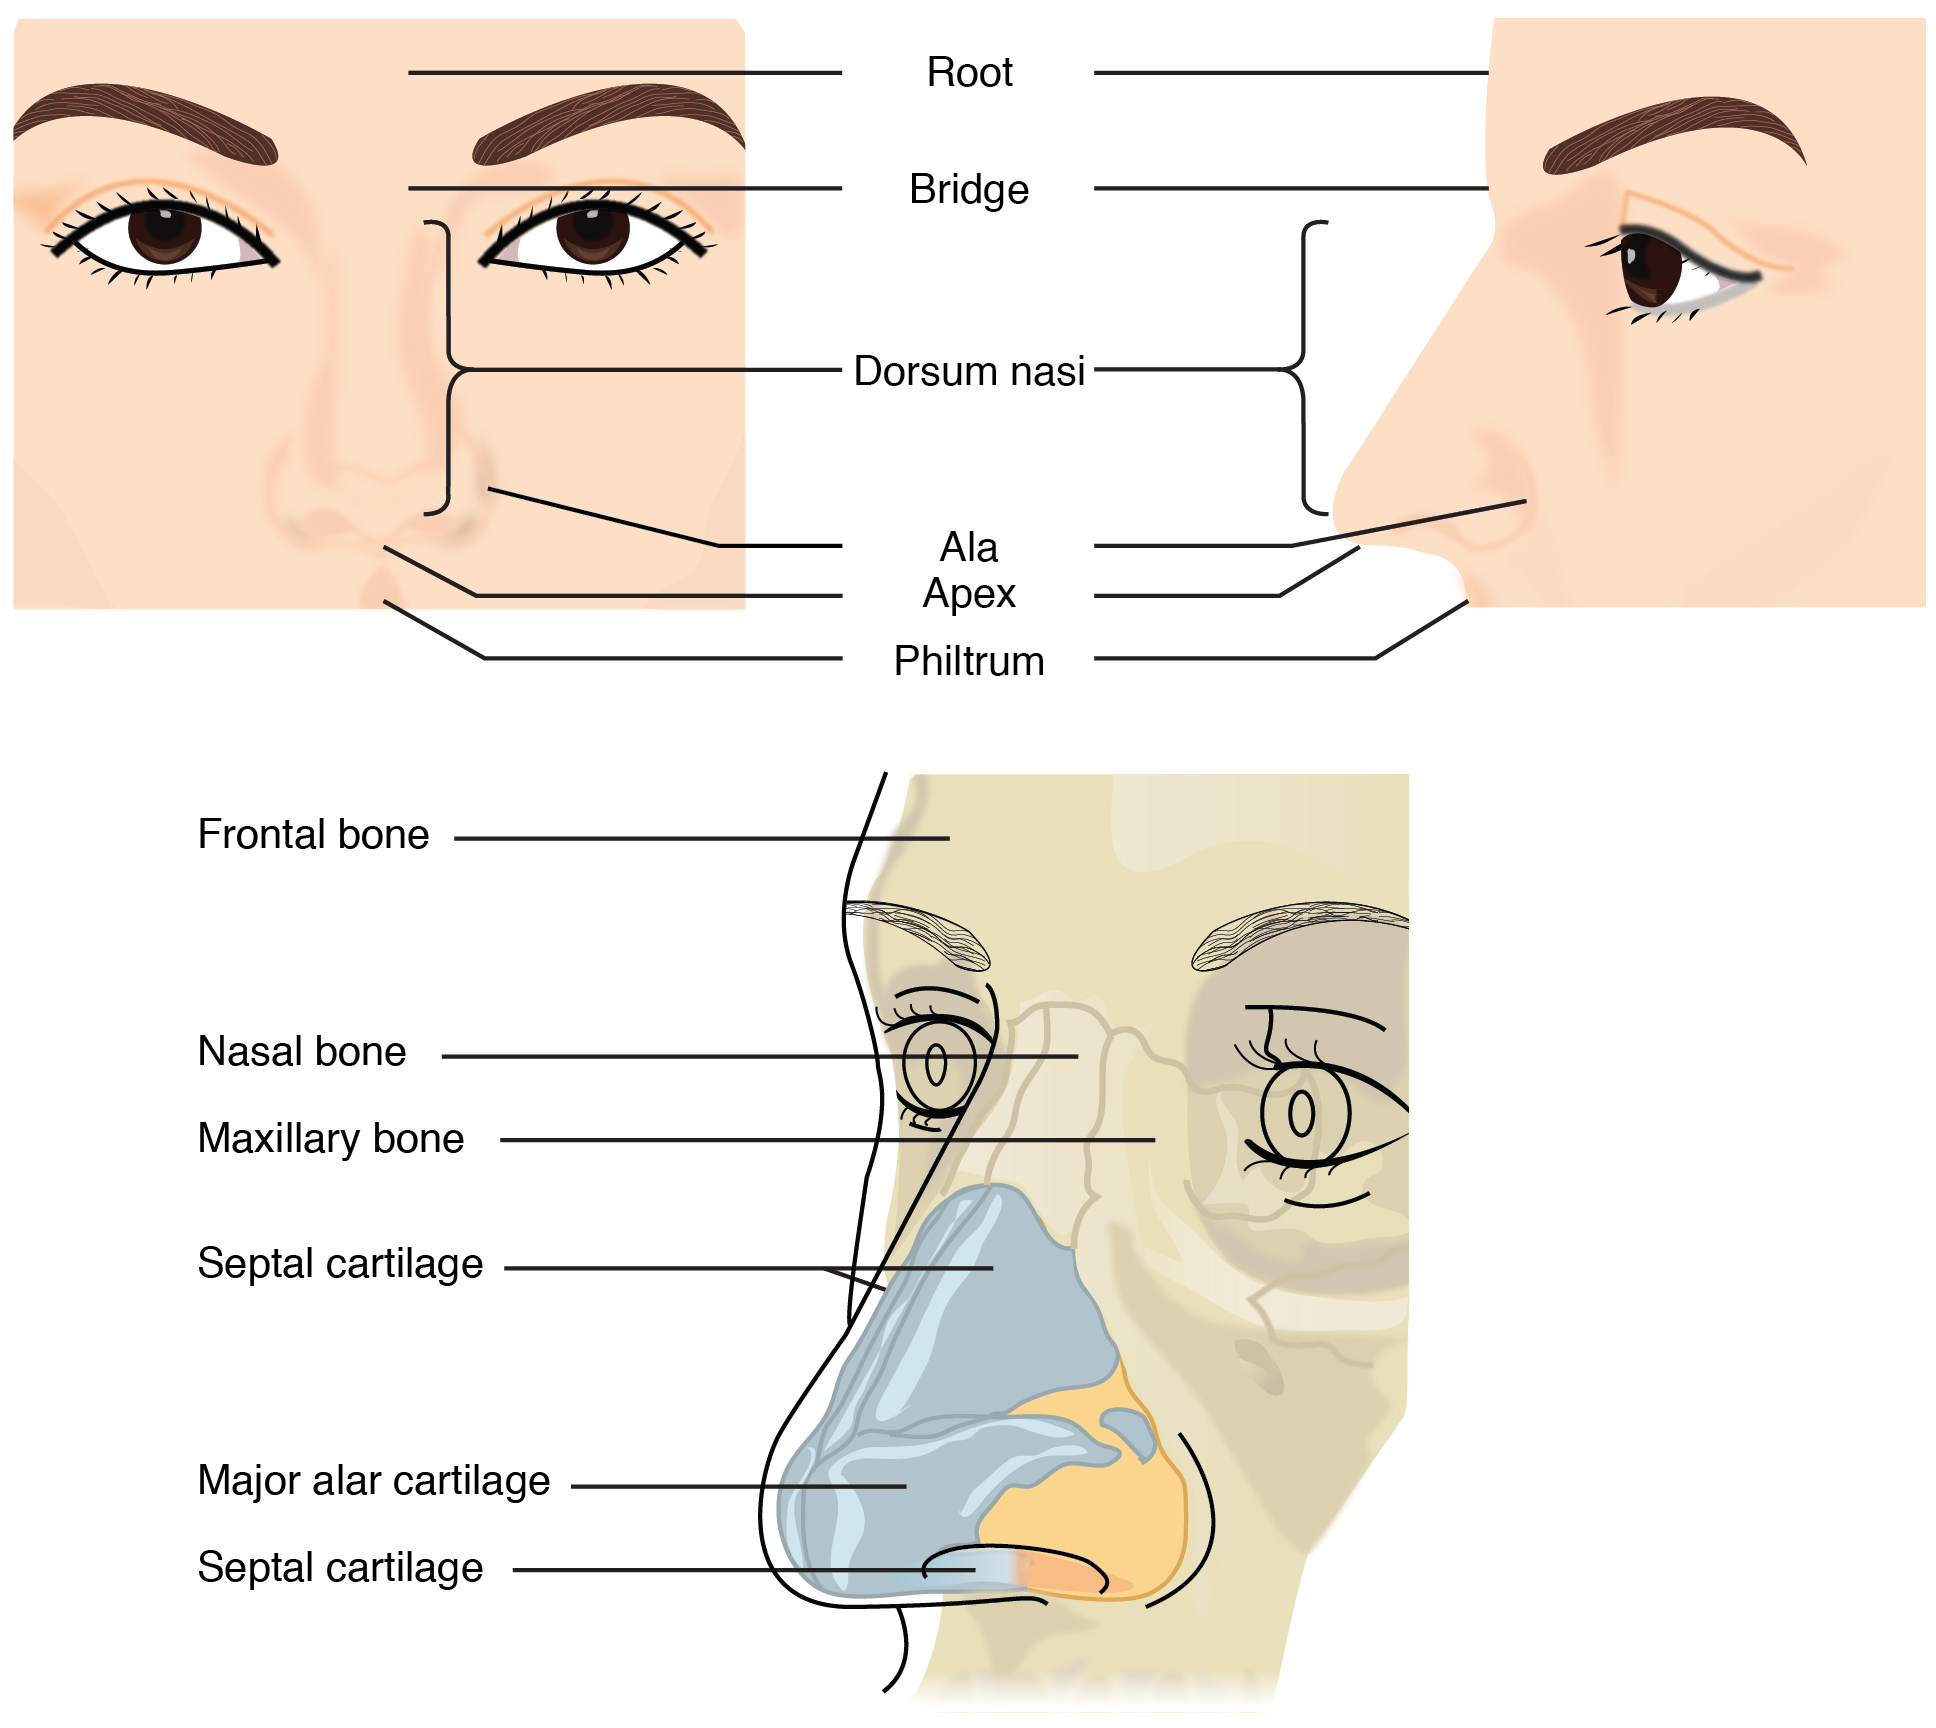 diagram of cat nasal bridge - simple wiring diagram